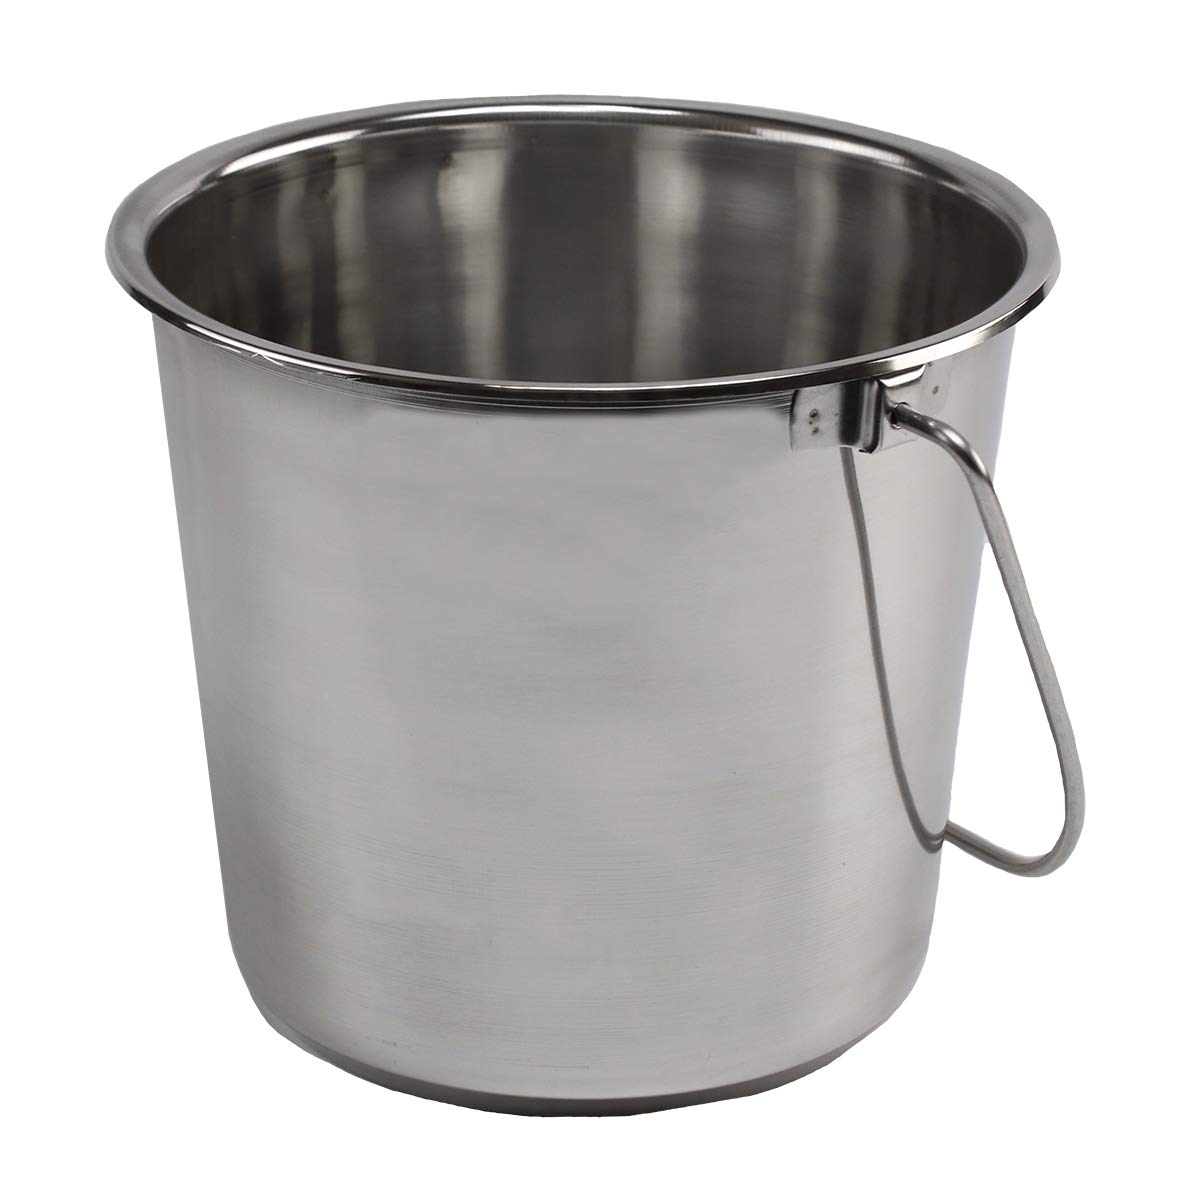 Stainless Steel Buckets for Pets, Cleaning, Food Prep (4 Gallon) by Grip